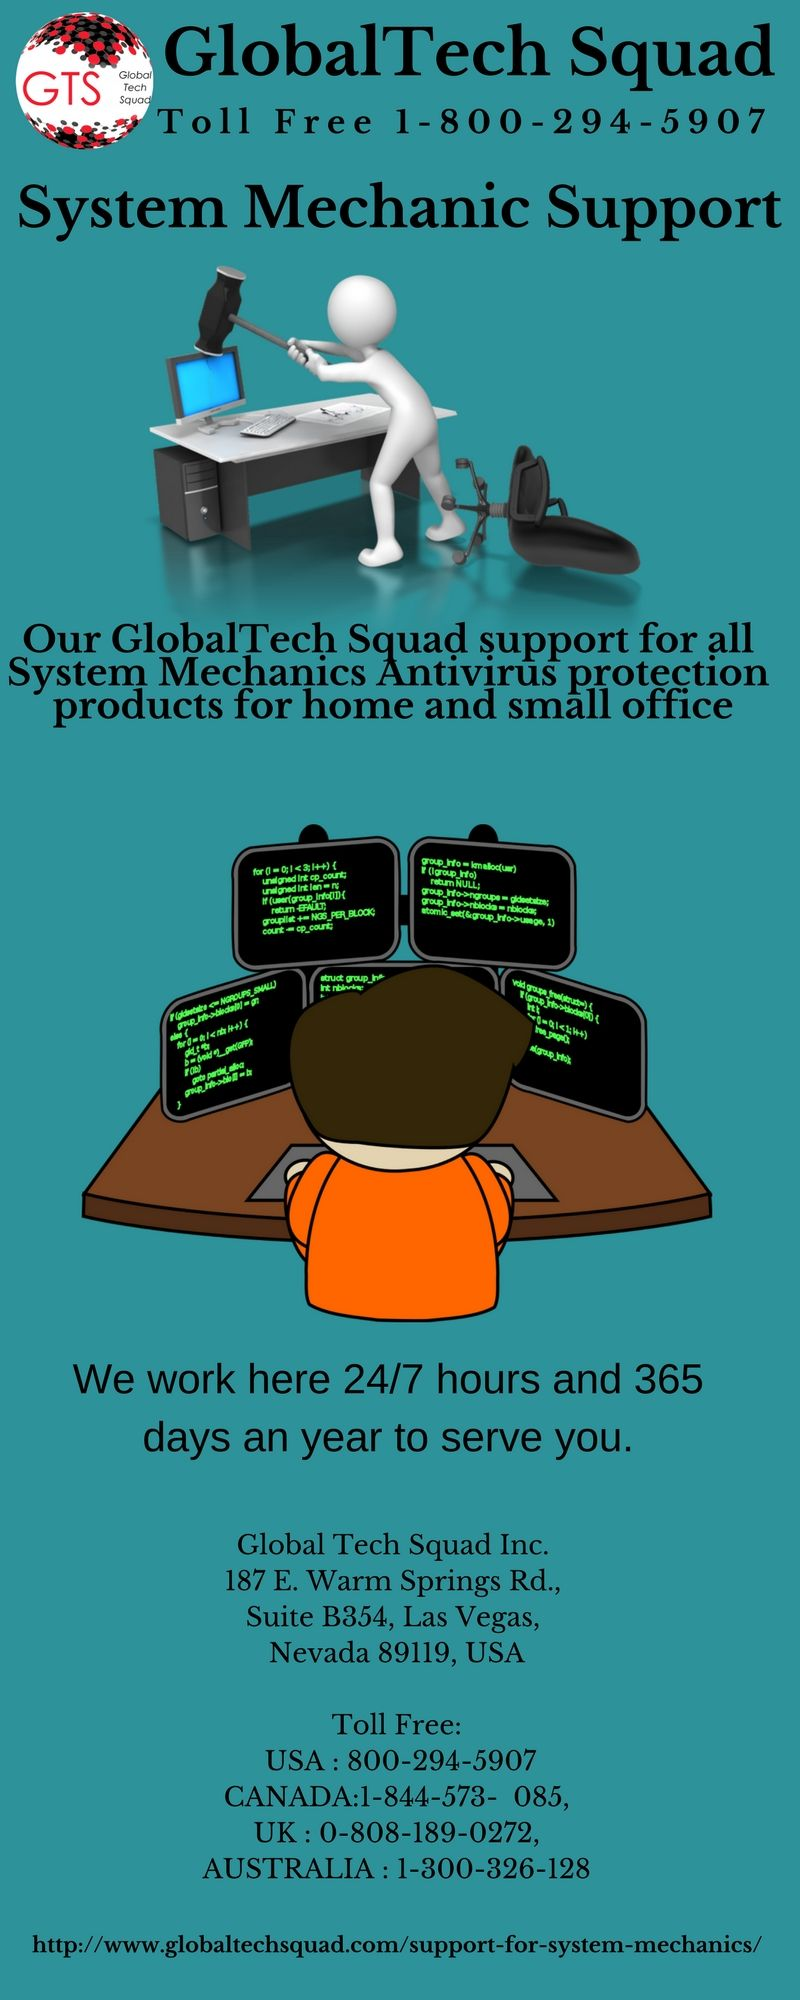 Pin by Ava Smith on GlobalTech Squad Antivirus